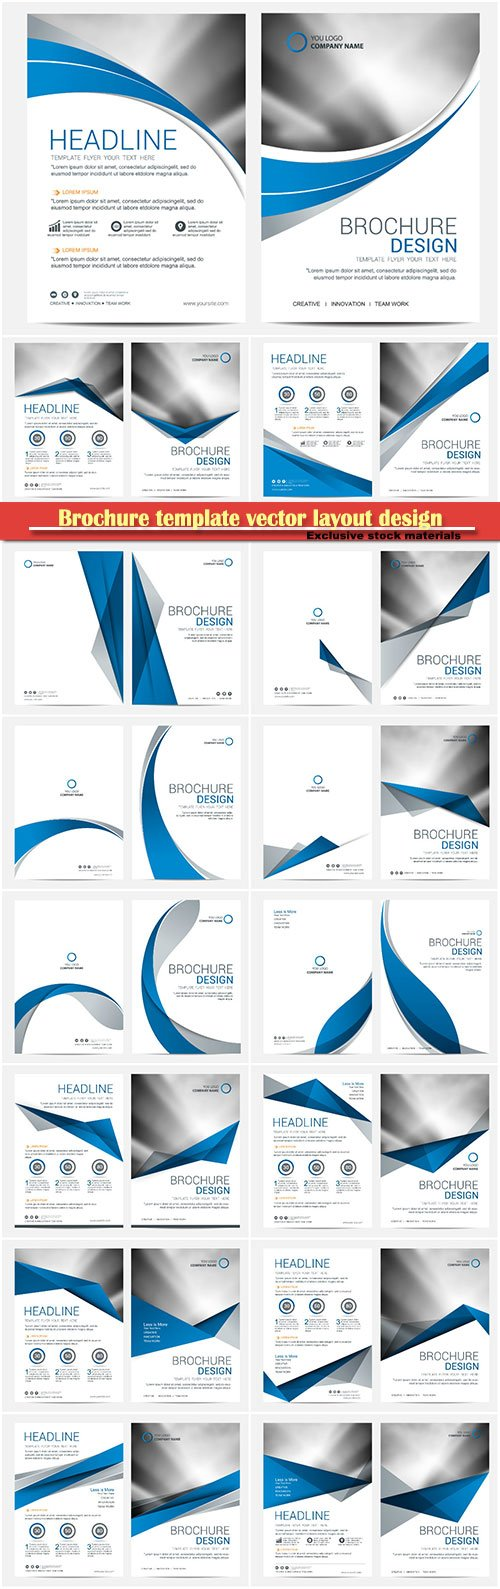 Brochure template vector layout design, corporate business annual report, magazine, flyer mockup # 152